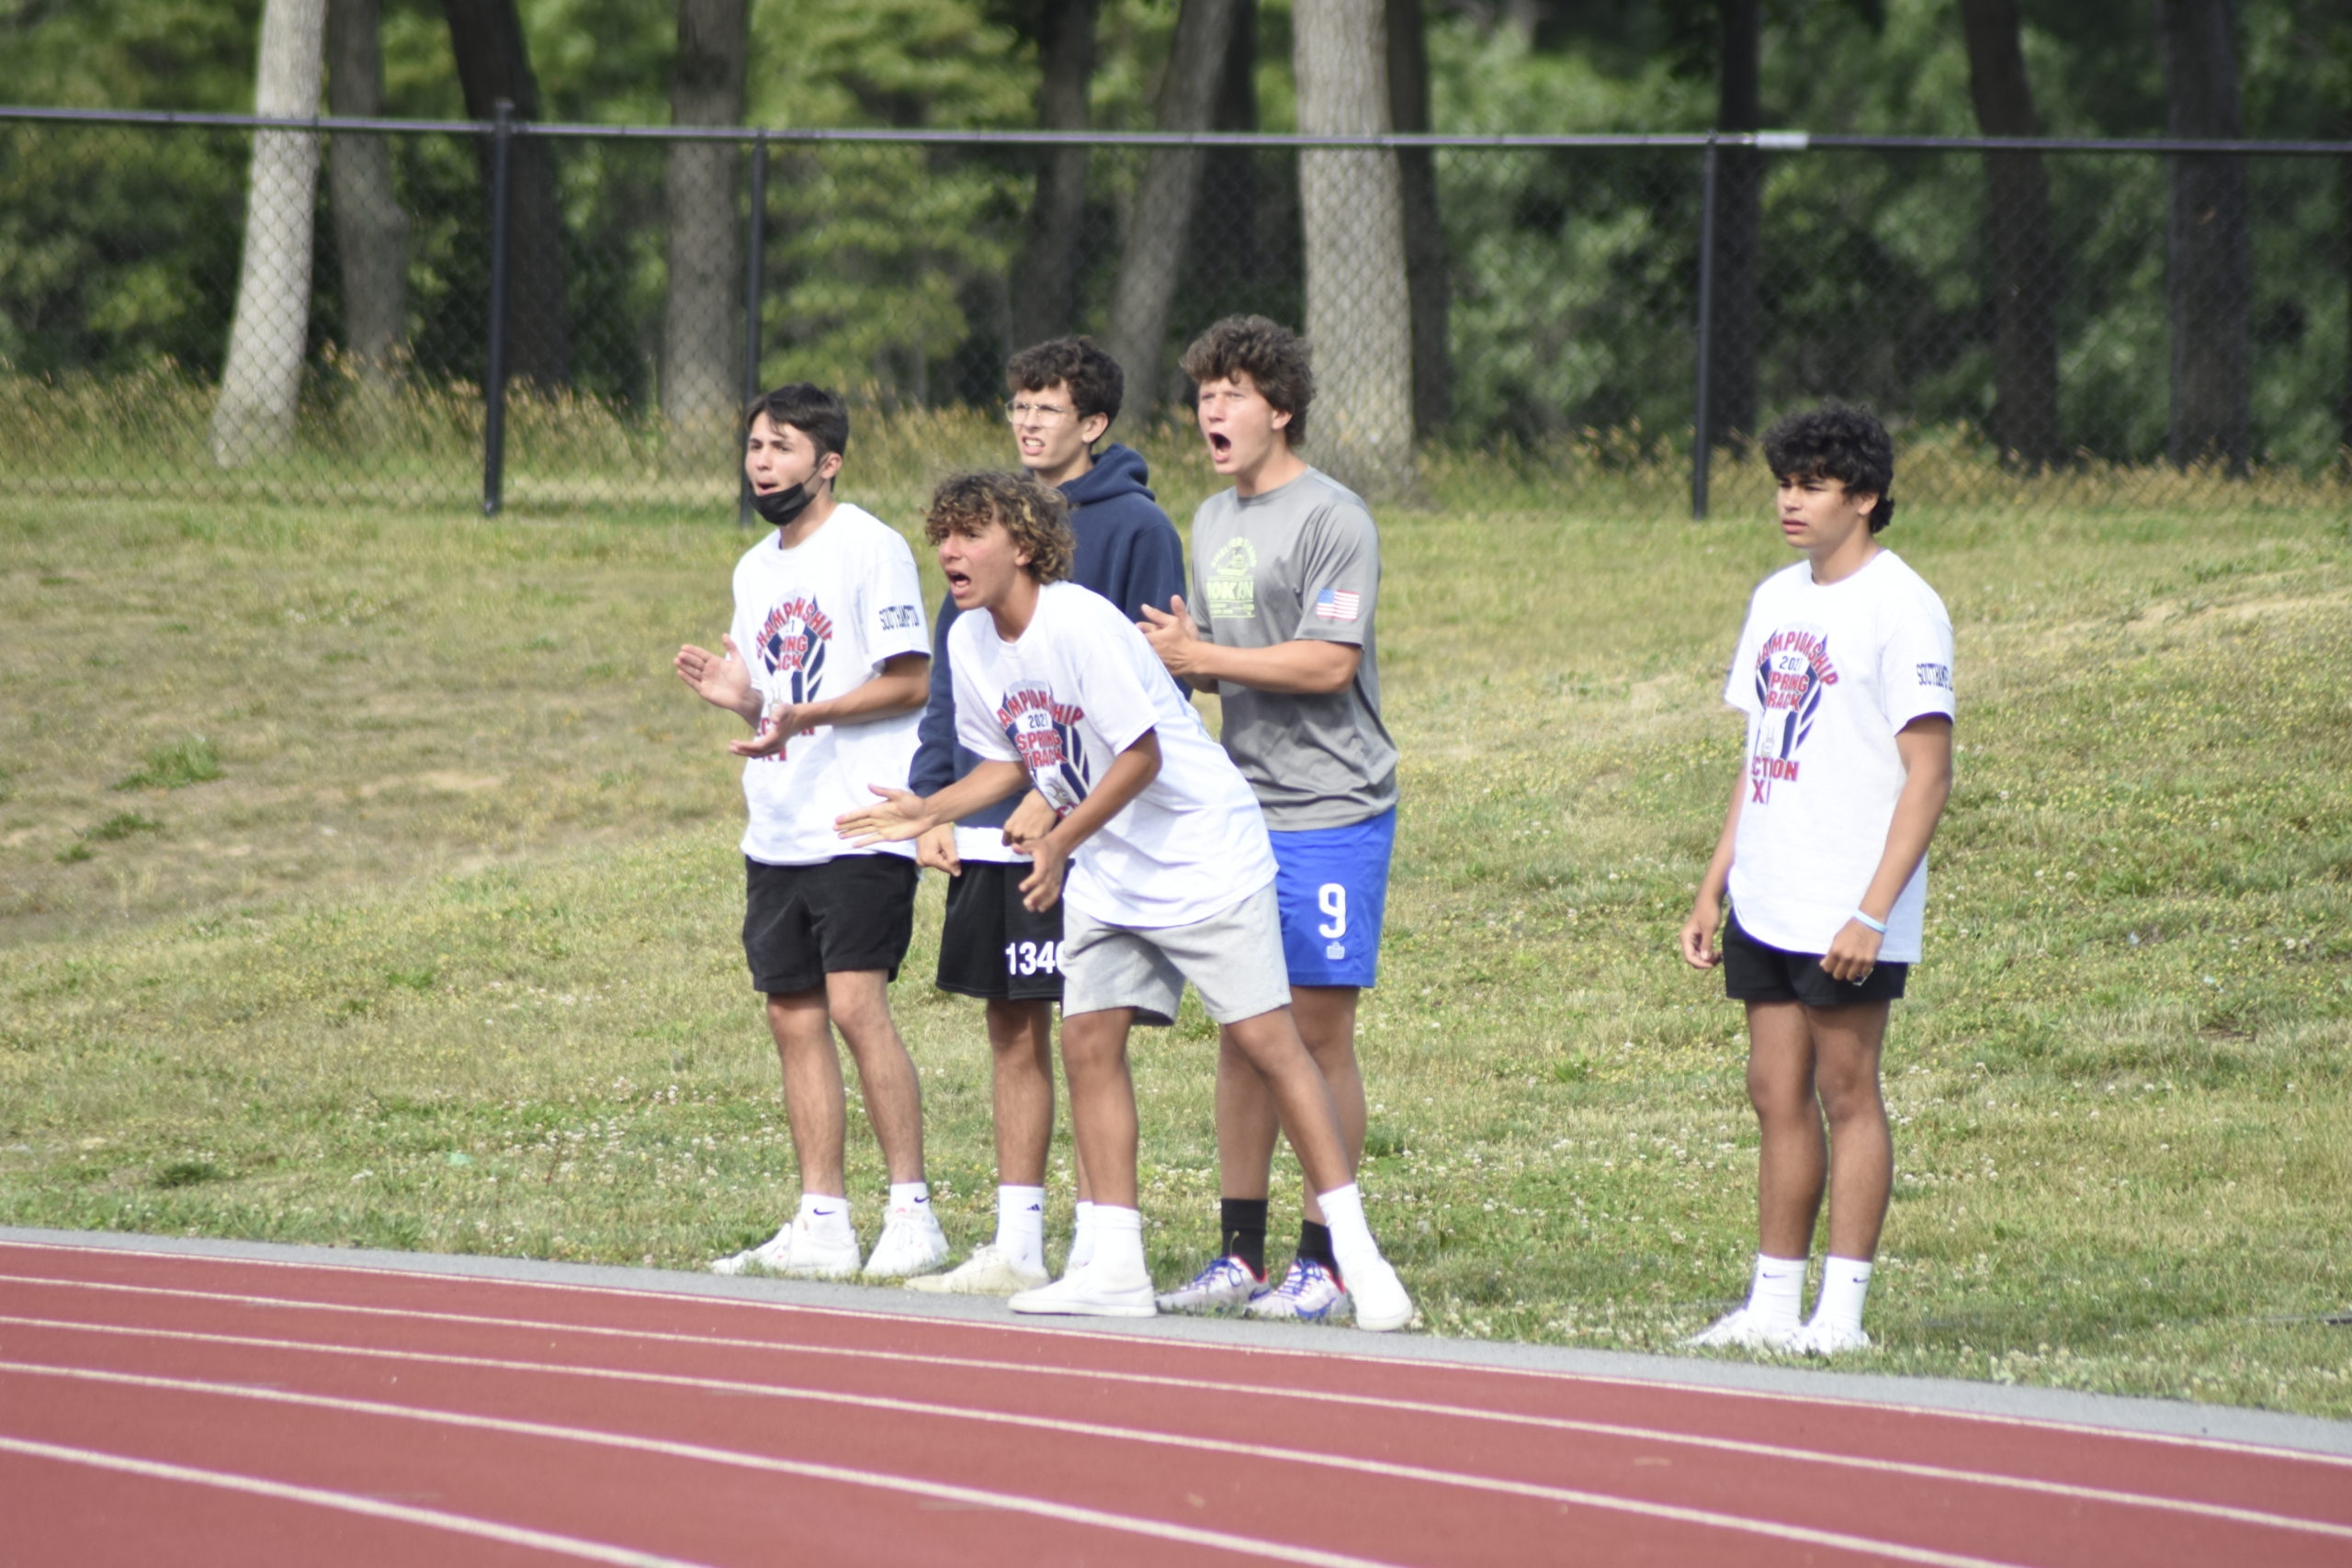 Derek Reed and Billy Malone had their Mariner teammates cheering them on at counties on Friday.